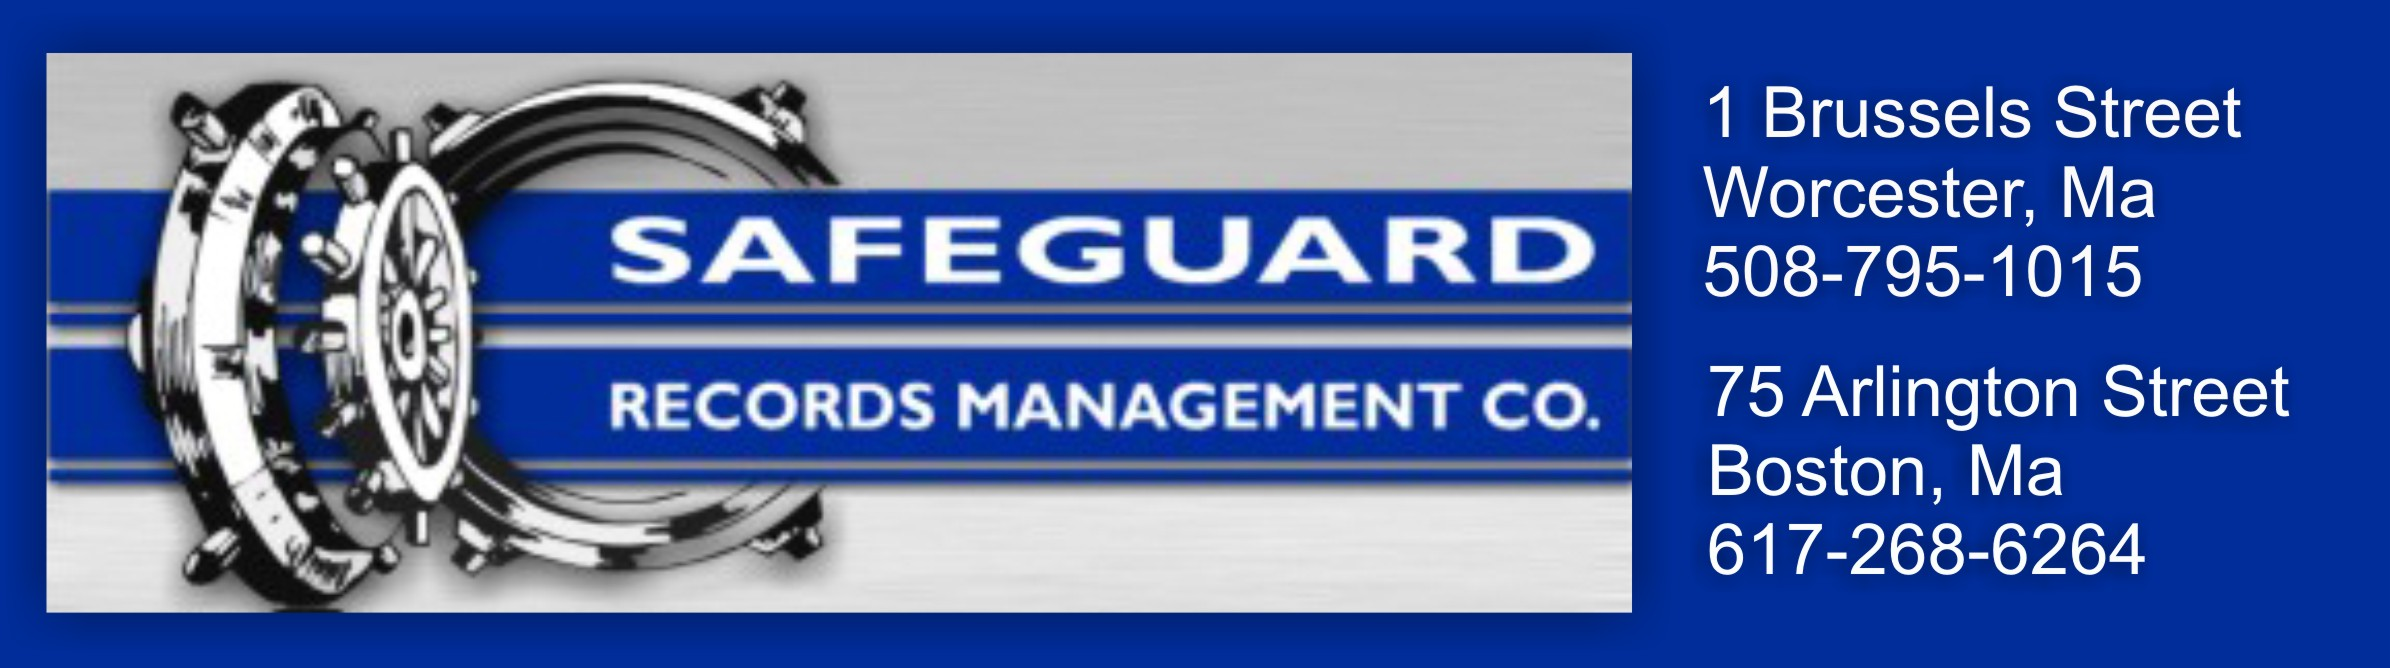 Safeguard Records